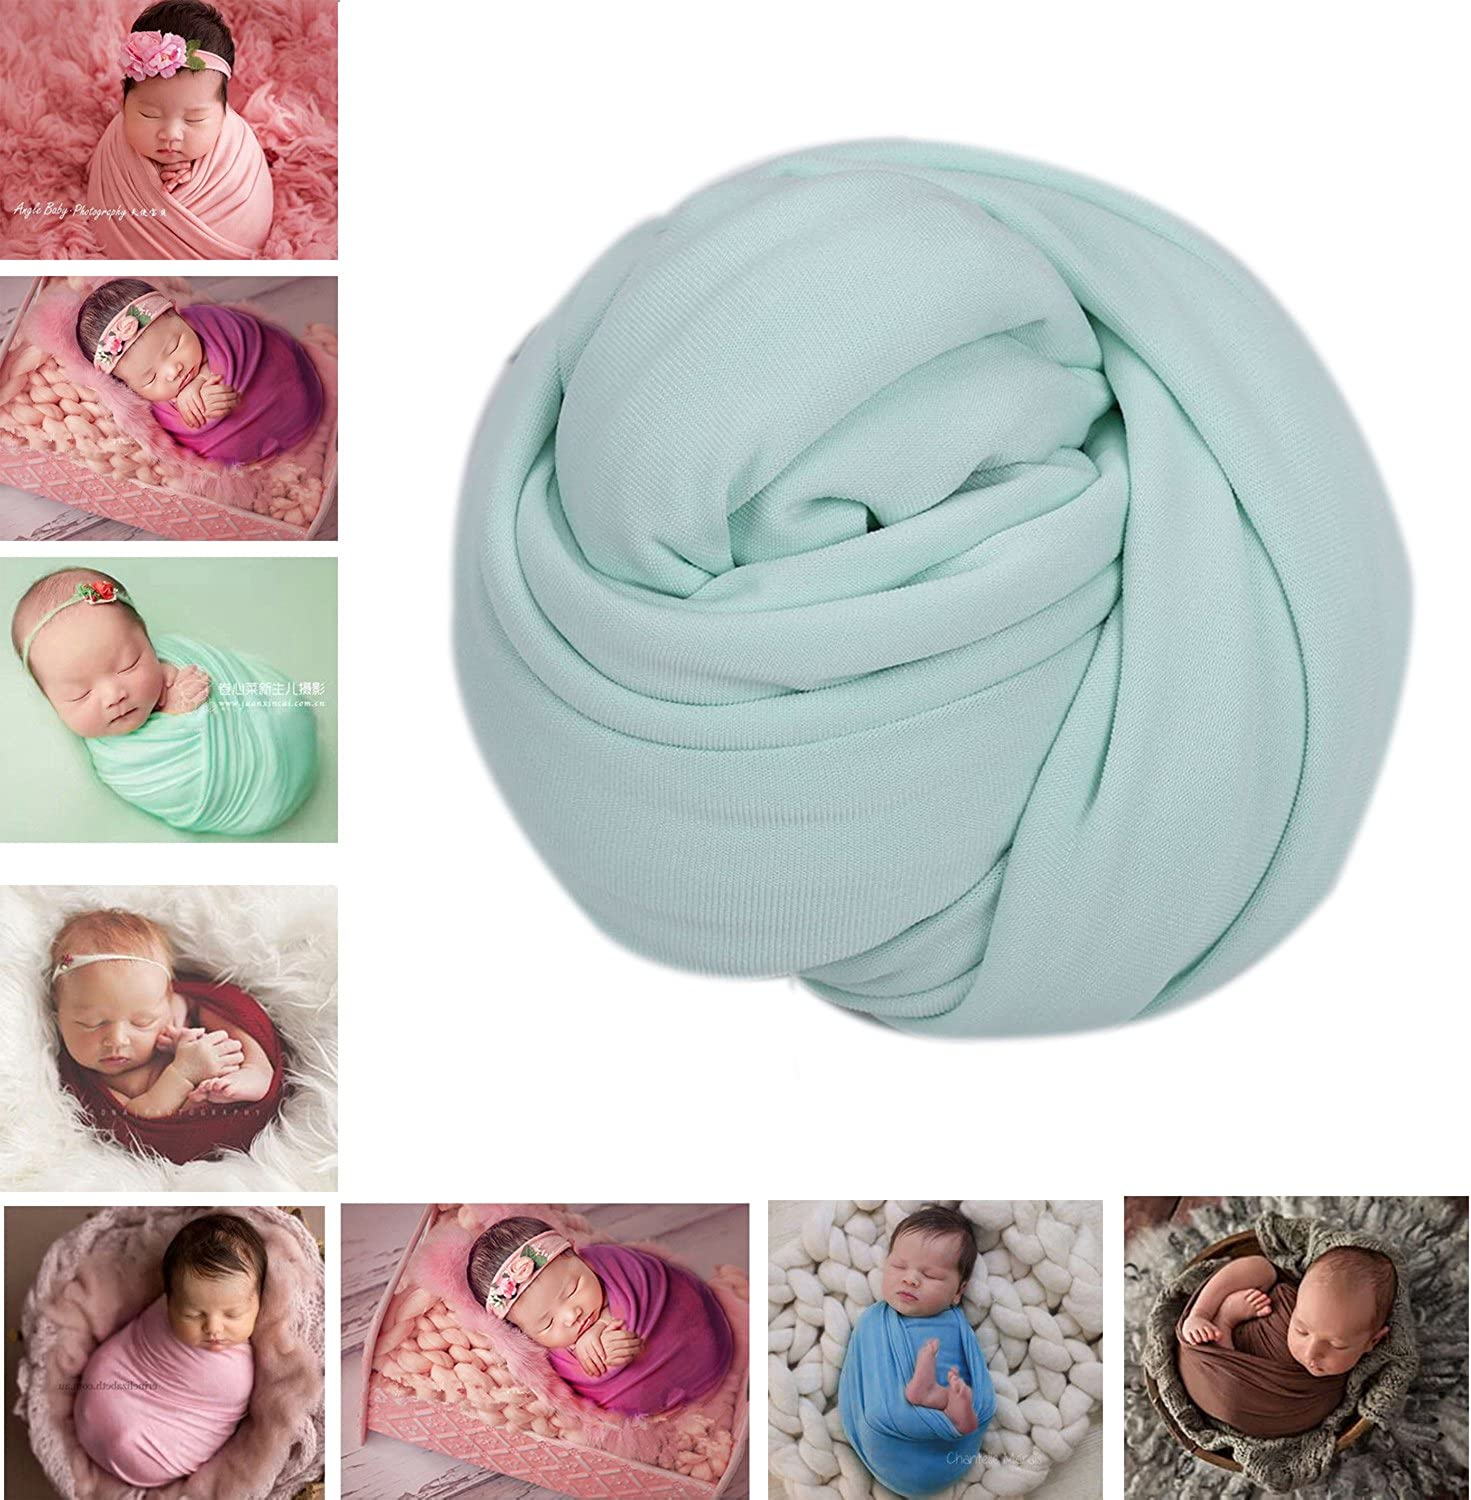 Newborn Baby Infant Soft Cotton Blanket Swaddle Wraps Photography Prop Backdrop